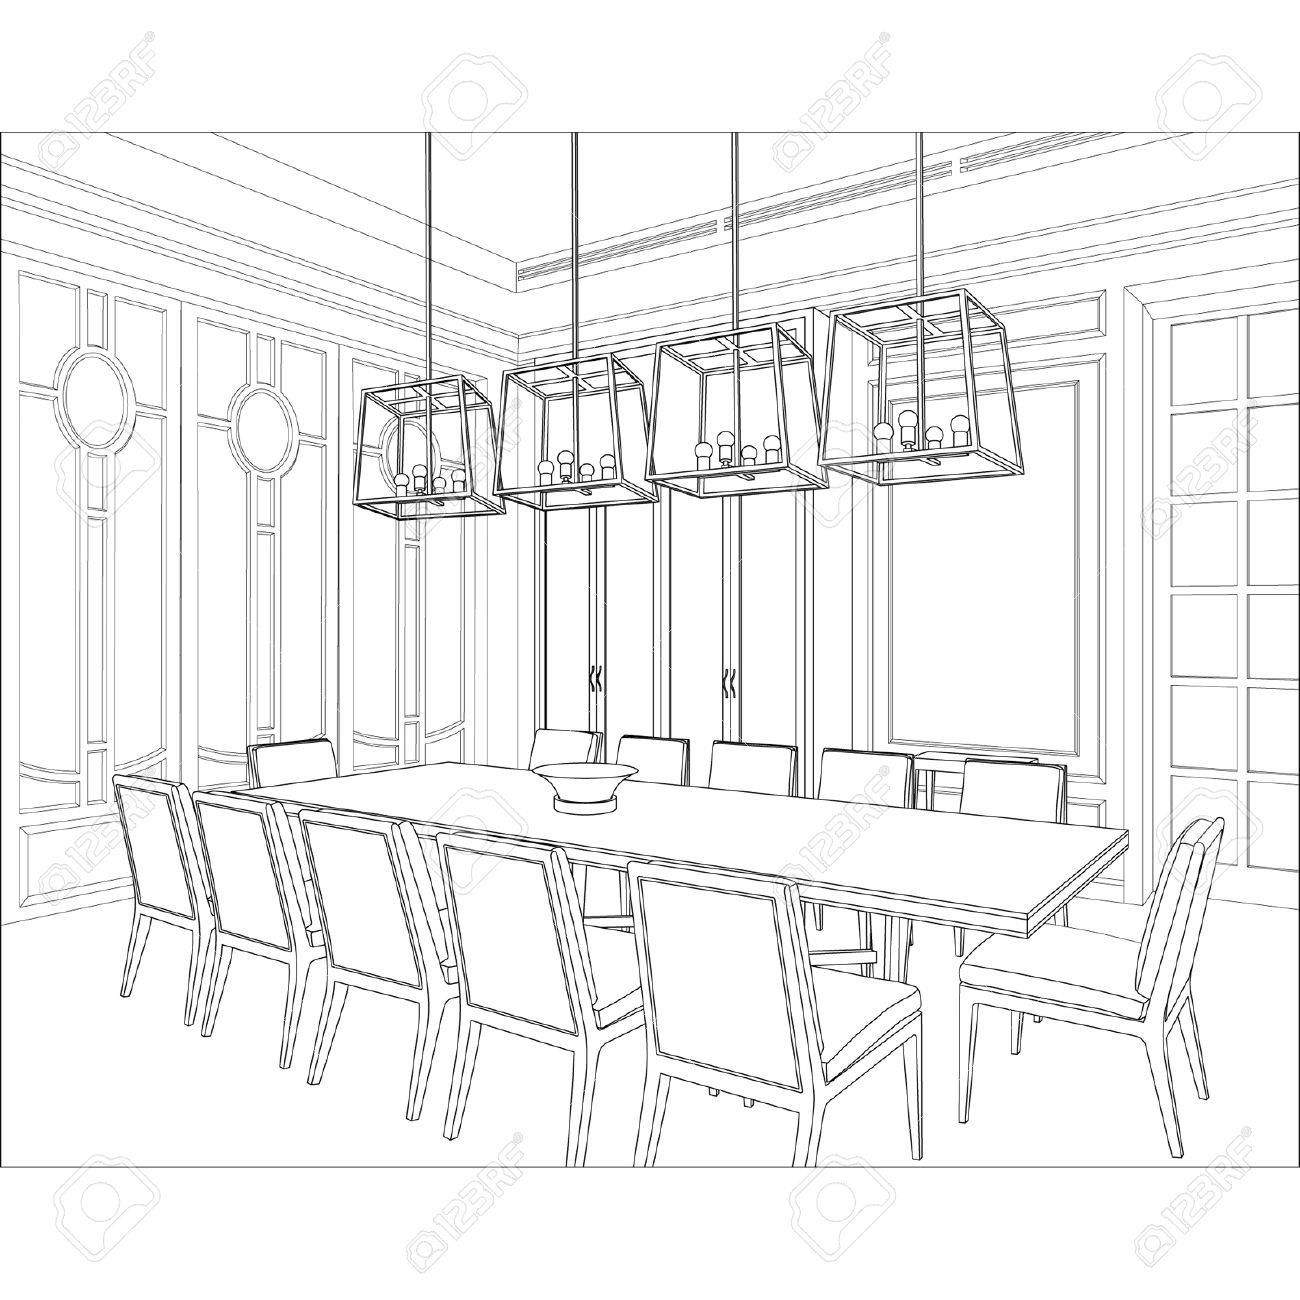 Editable Vector Illustration Of An Outline Sketch Of A Interior